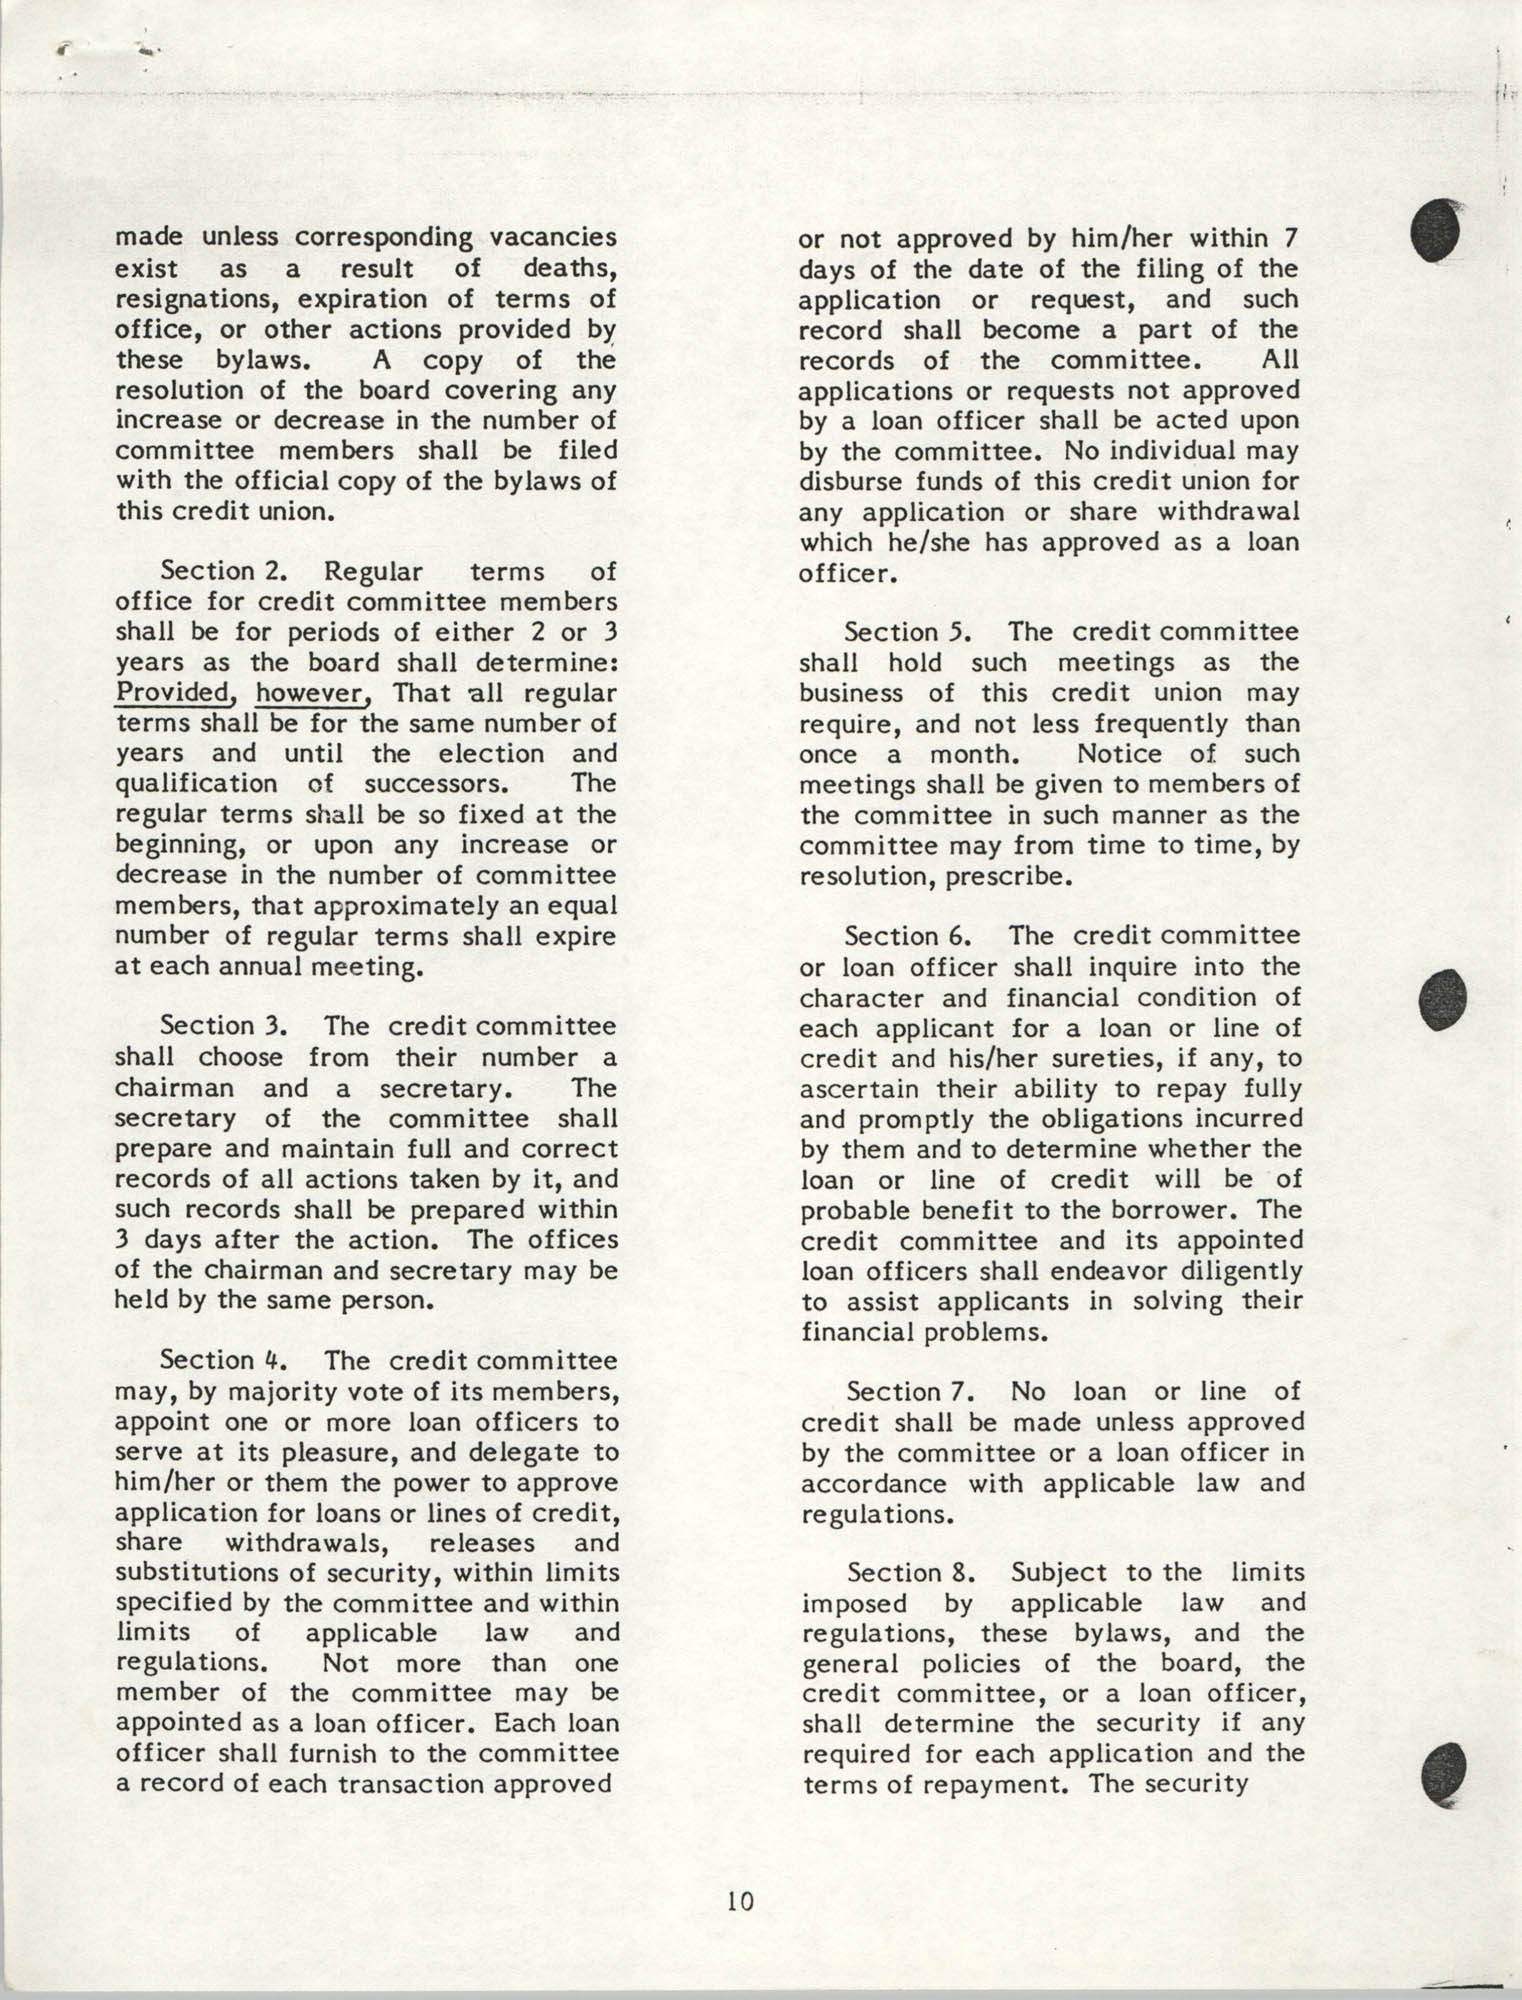 National Credit Union Administration, Federal Credit Union Bylaws, May 1986, Page 10